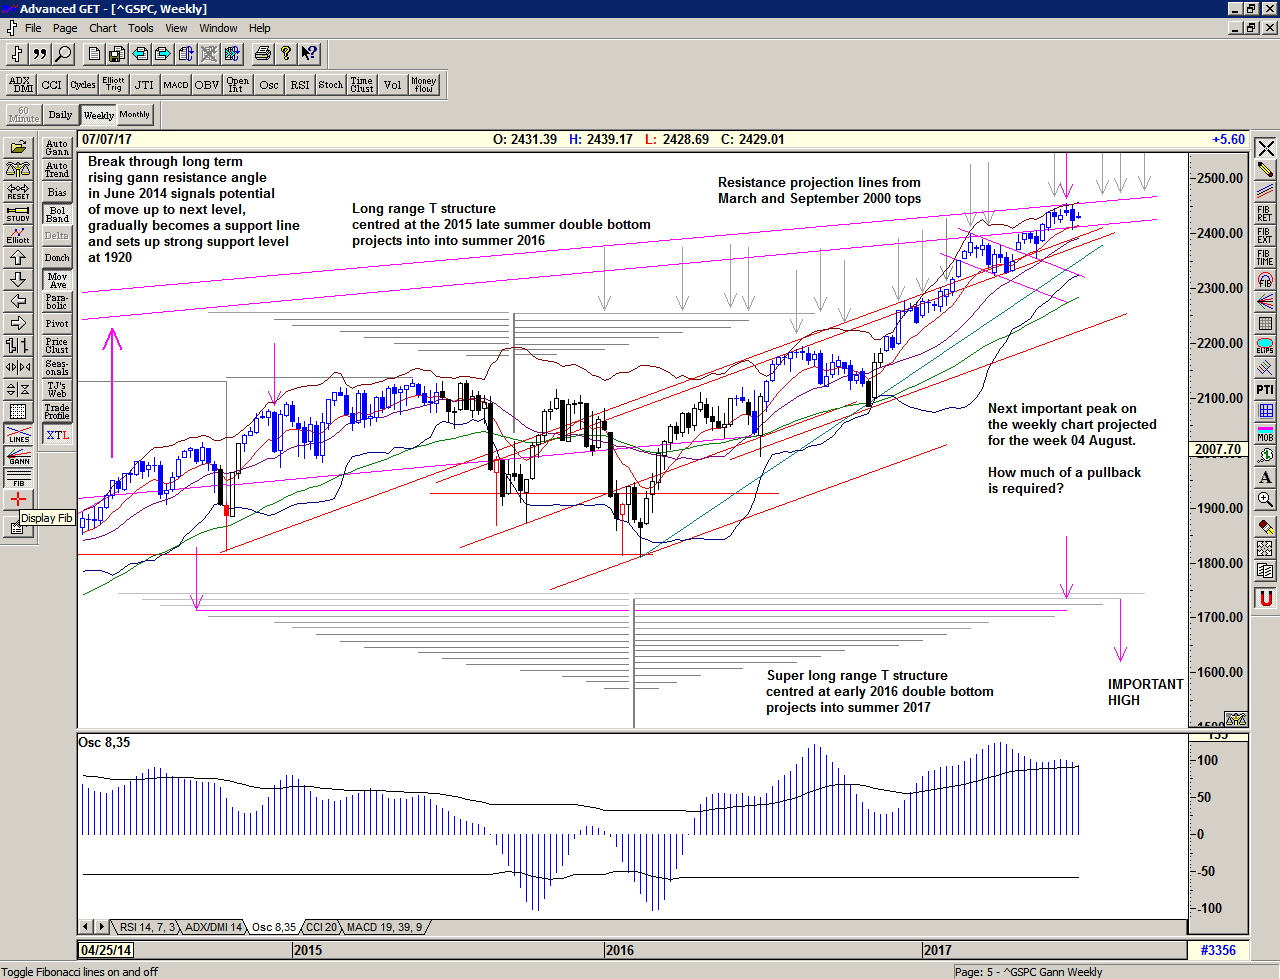 Chart of S&P 500 for 05 July 2017